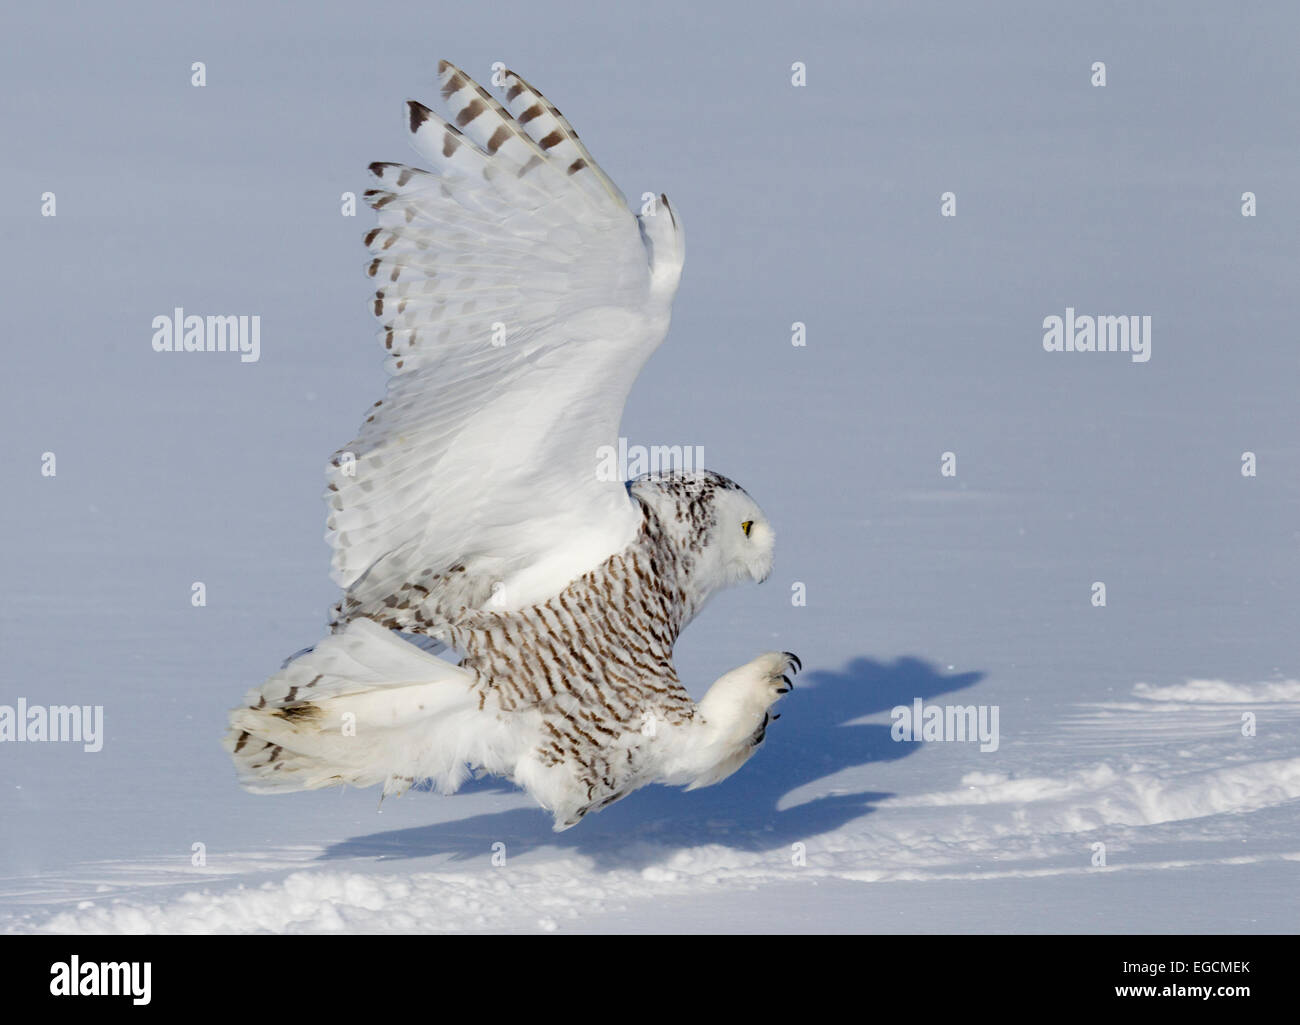 Snowy Owl on Final Approach - Stock Image